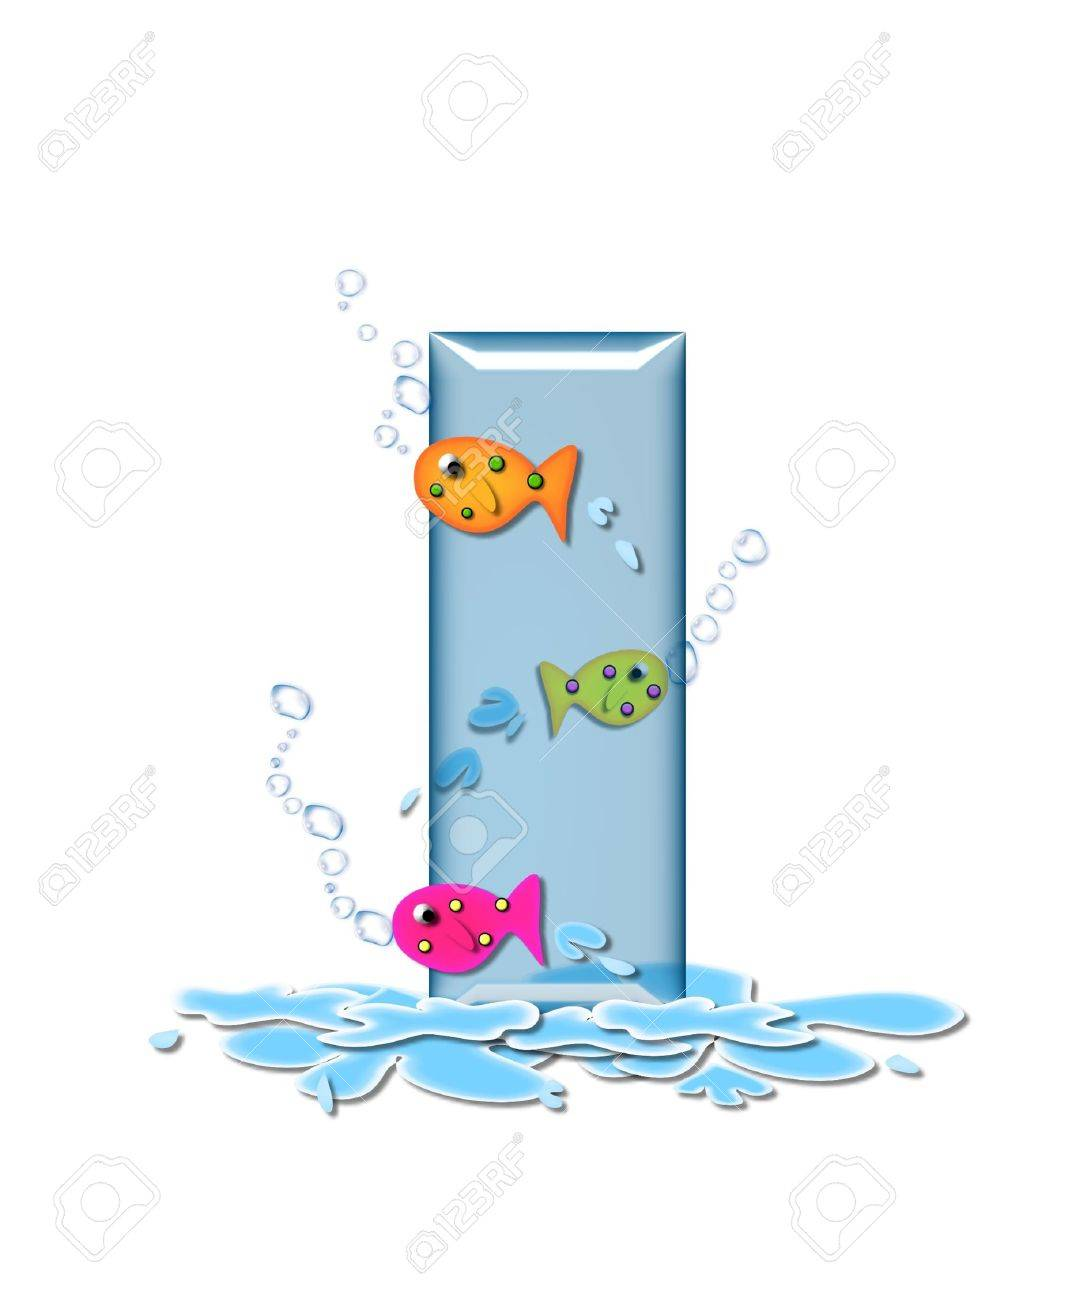 stock photo the letter i in the alphabet set fish flop is aqua in color and transparent you can see fish swimming behind letter and in front